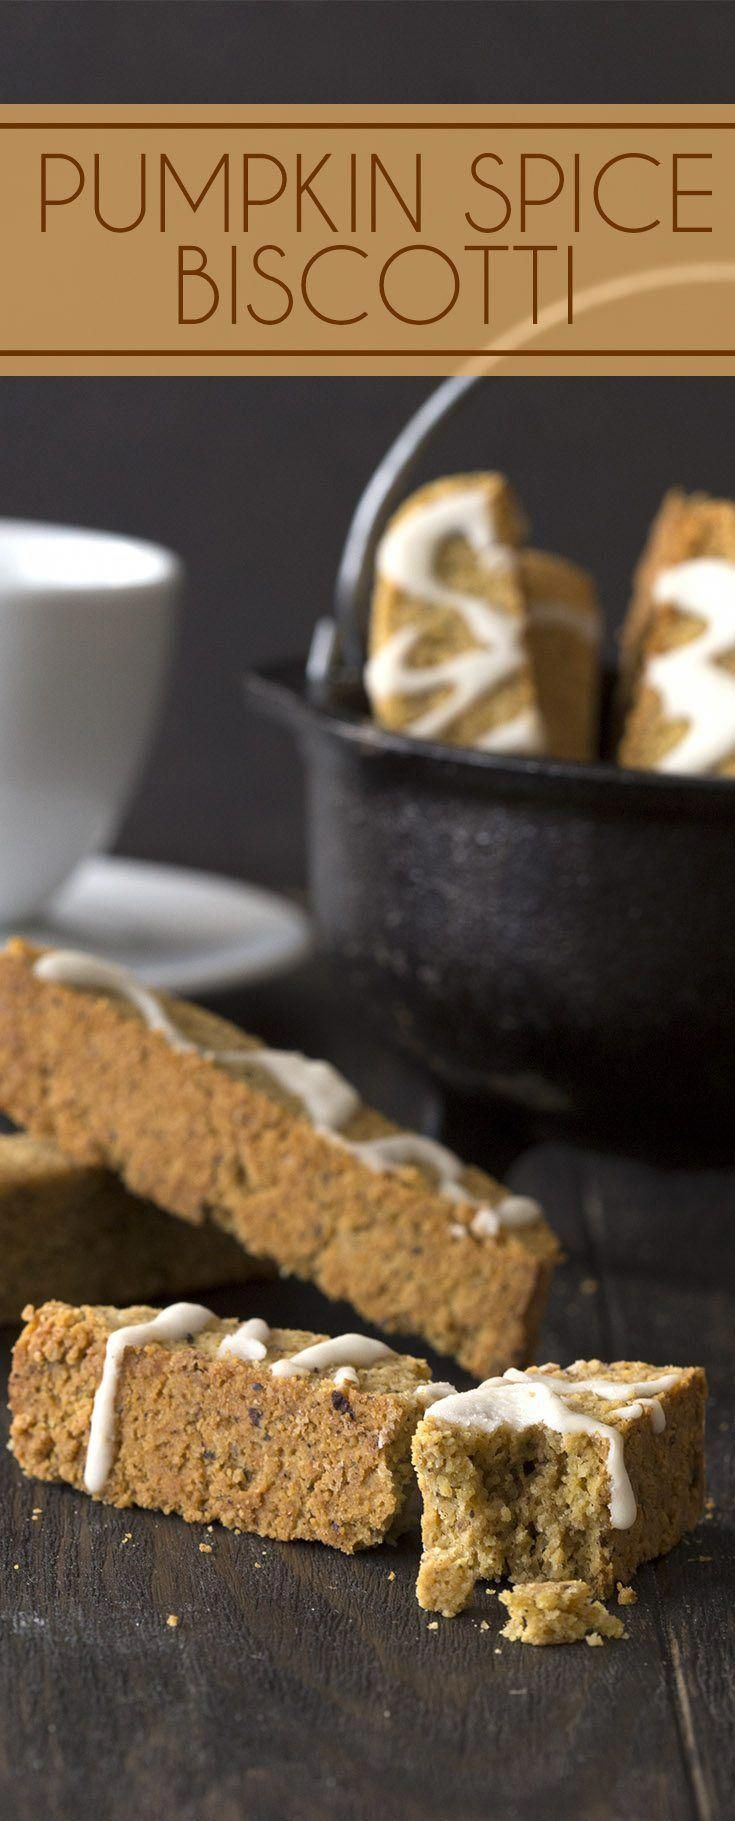 These keto pumpkin spice biscotti are perfect for dunking in your morning coffee. Sugar free and grain free and virtually guilt-free! via @dreamaboutfood #veganproteinbars,veganbars,glutenfreebars,lowcarbbars,ketobars,nobakebars,lowsugarbars,lowcaloriebars,buttercocoutbars #pumpkinspiceketocoffee These keto pumpkin spice biscotti are perfect for dunking in your morning coffee. Sugar free and grain free and virtually guilt-free! via @dreamaboutfood #veganproteinbars,veganbars,glutenfreebars,lowca #pumpkinspiceketocoffee